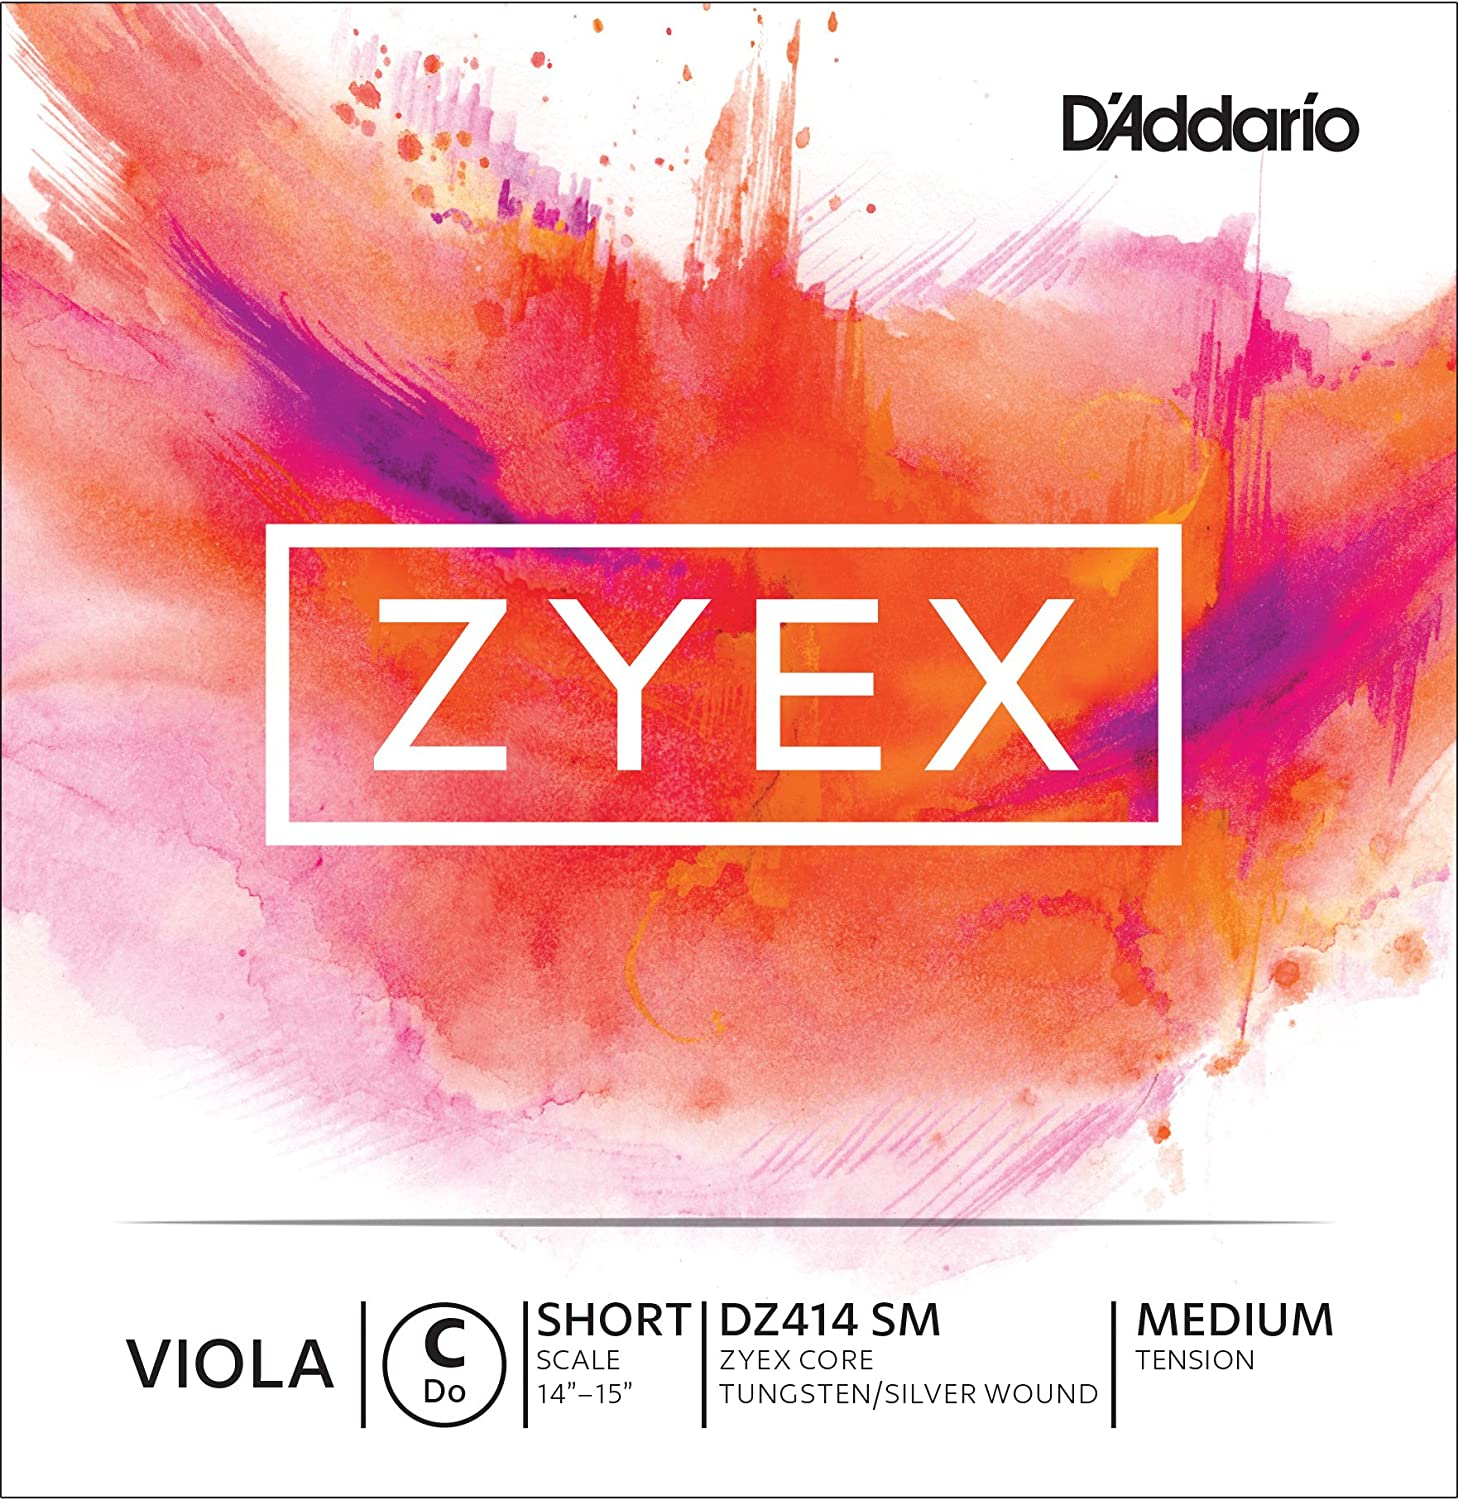 D'Addario Zyex Viola Single C String, Short Scale, Medium Tension D'Addario &Co. Inc DZ414 SM